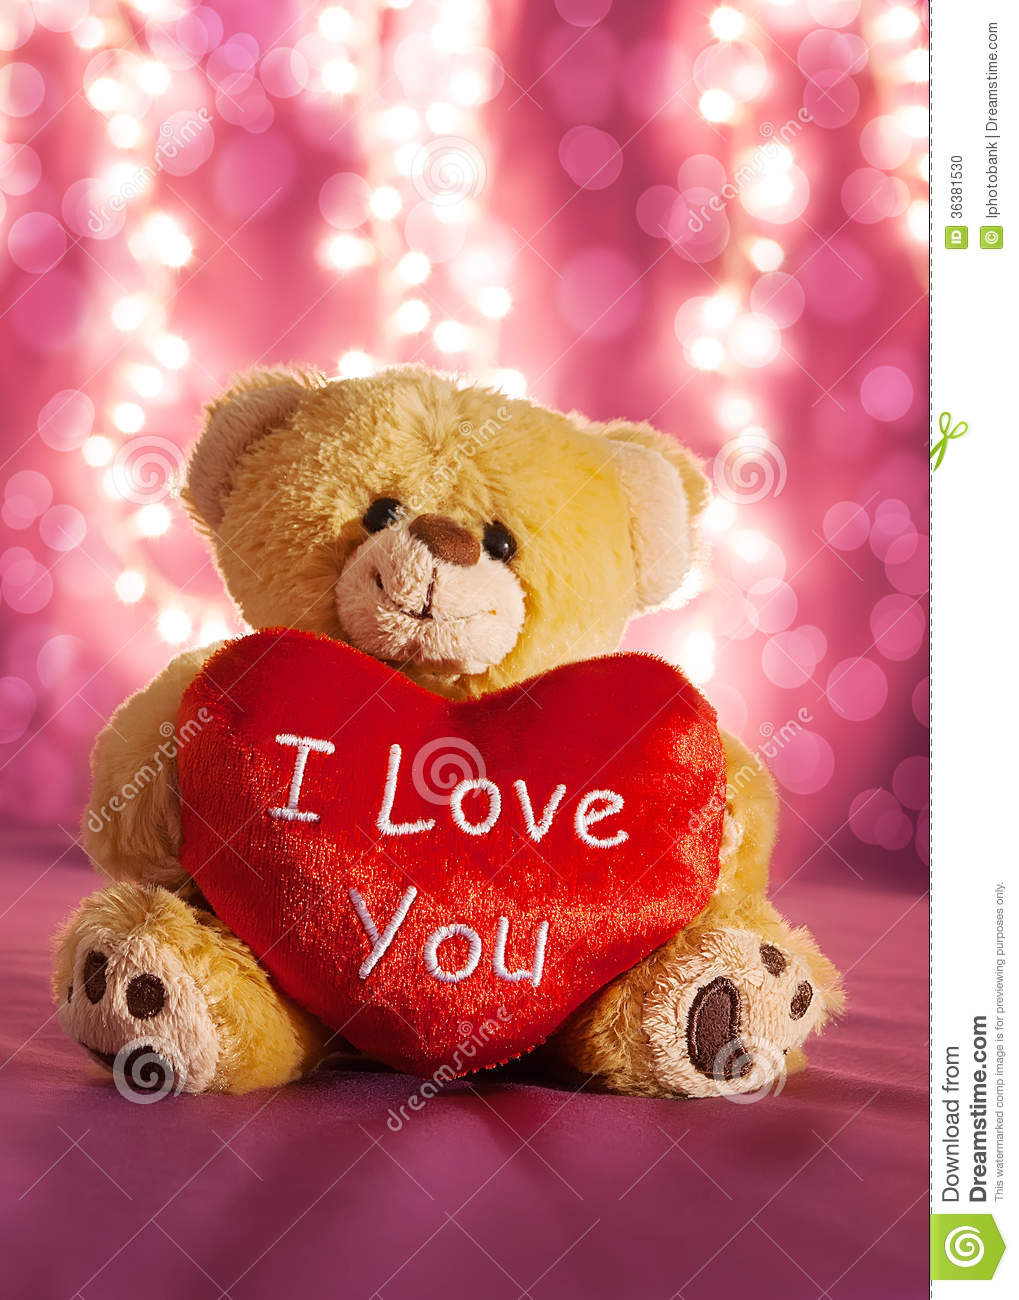 Little Teddy Bear With Big Red Heart Stock Photo - Image ...